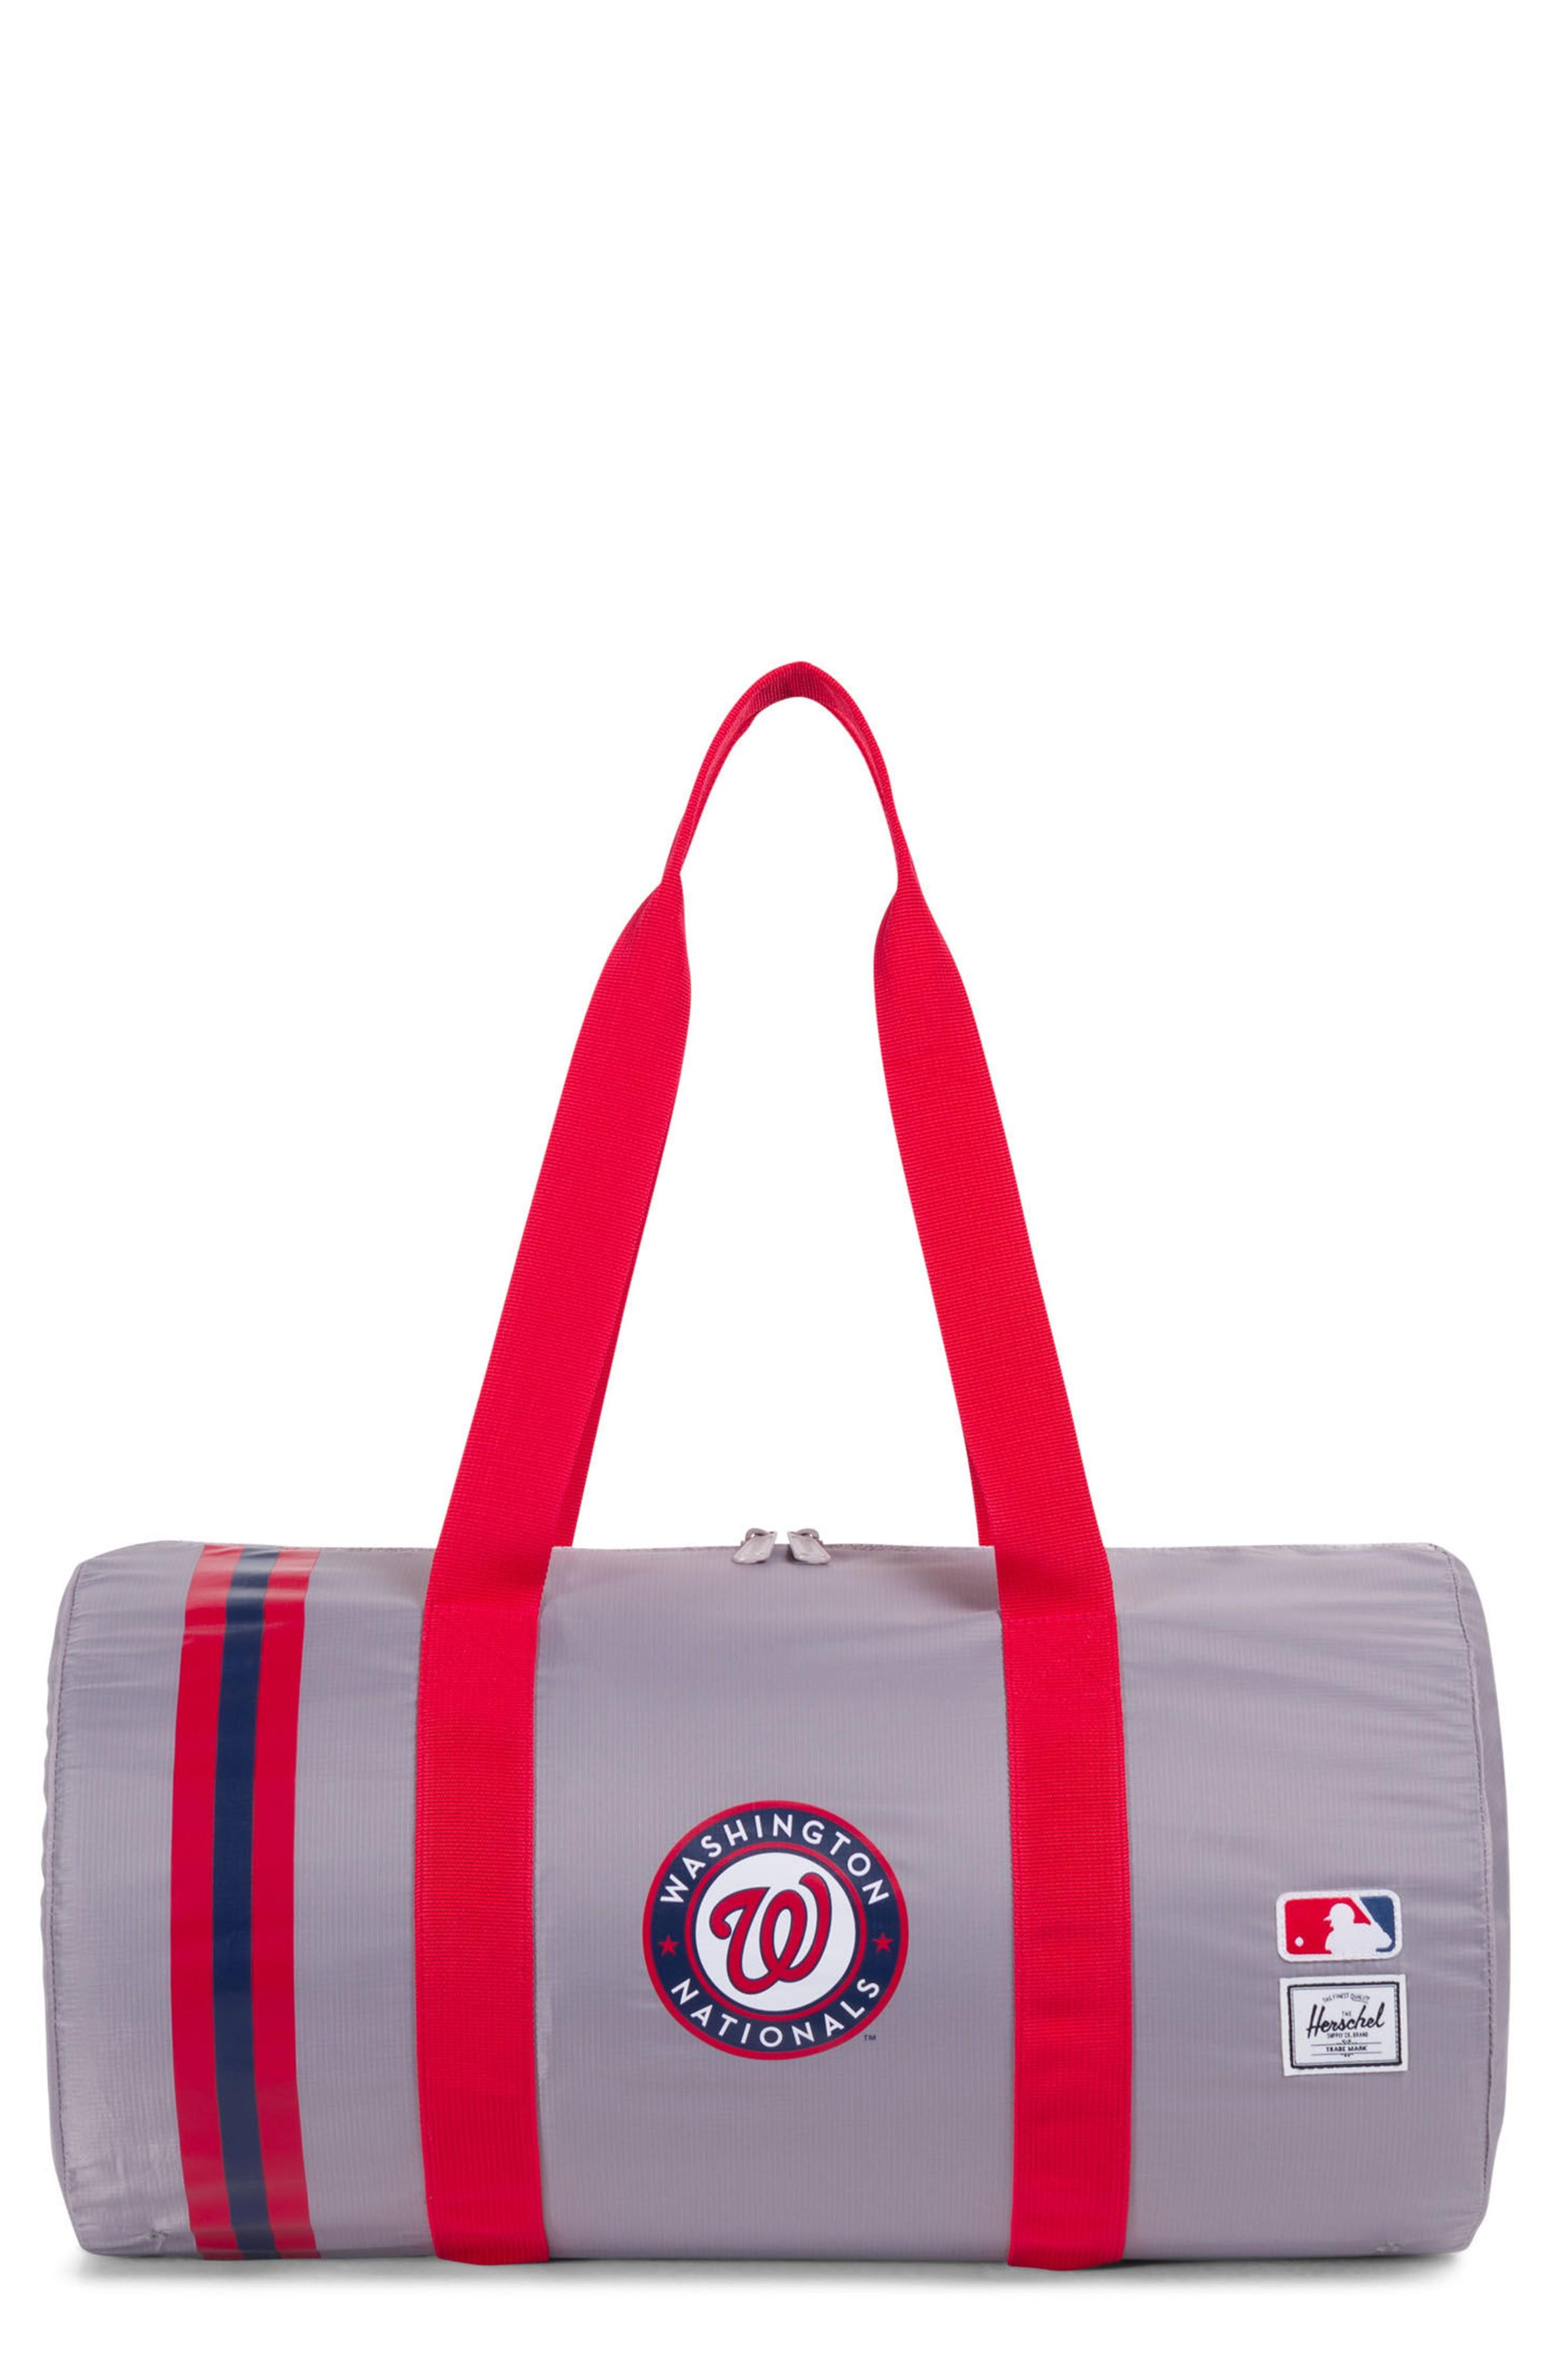 03cfd49580 An ultra-light ripstop duffel bag is the perfect companion for the gym or  fielding practice